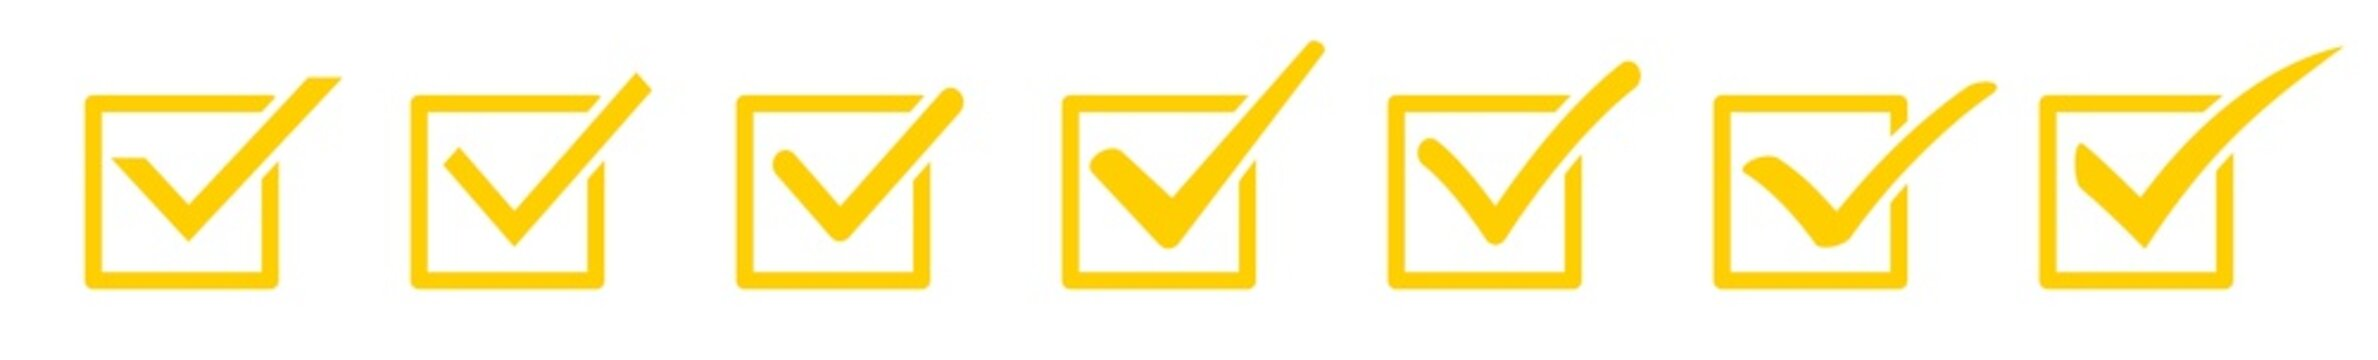 Check Mark Checkbox Square Icon Yellow | Checkmark Illustration | Tick Symbol | Voting Logo | Approved Sign | Isolated | Variations